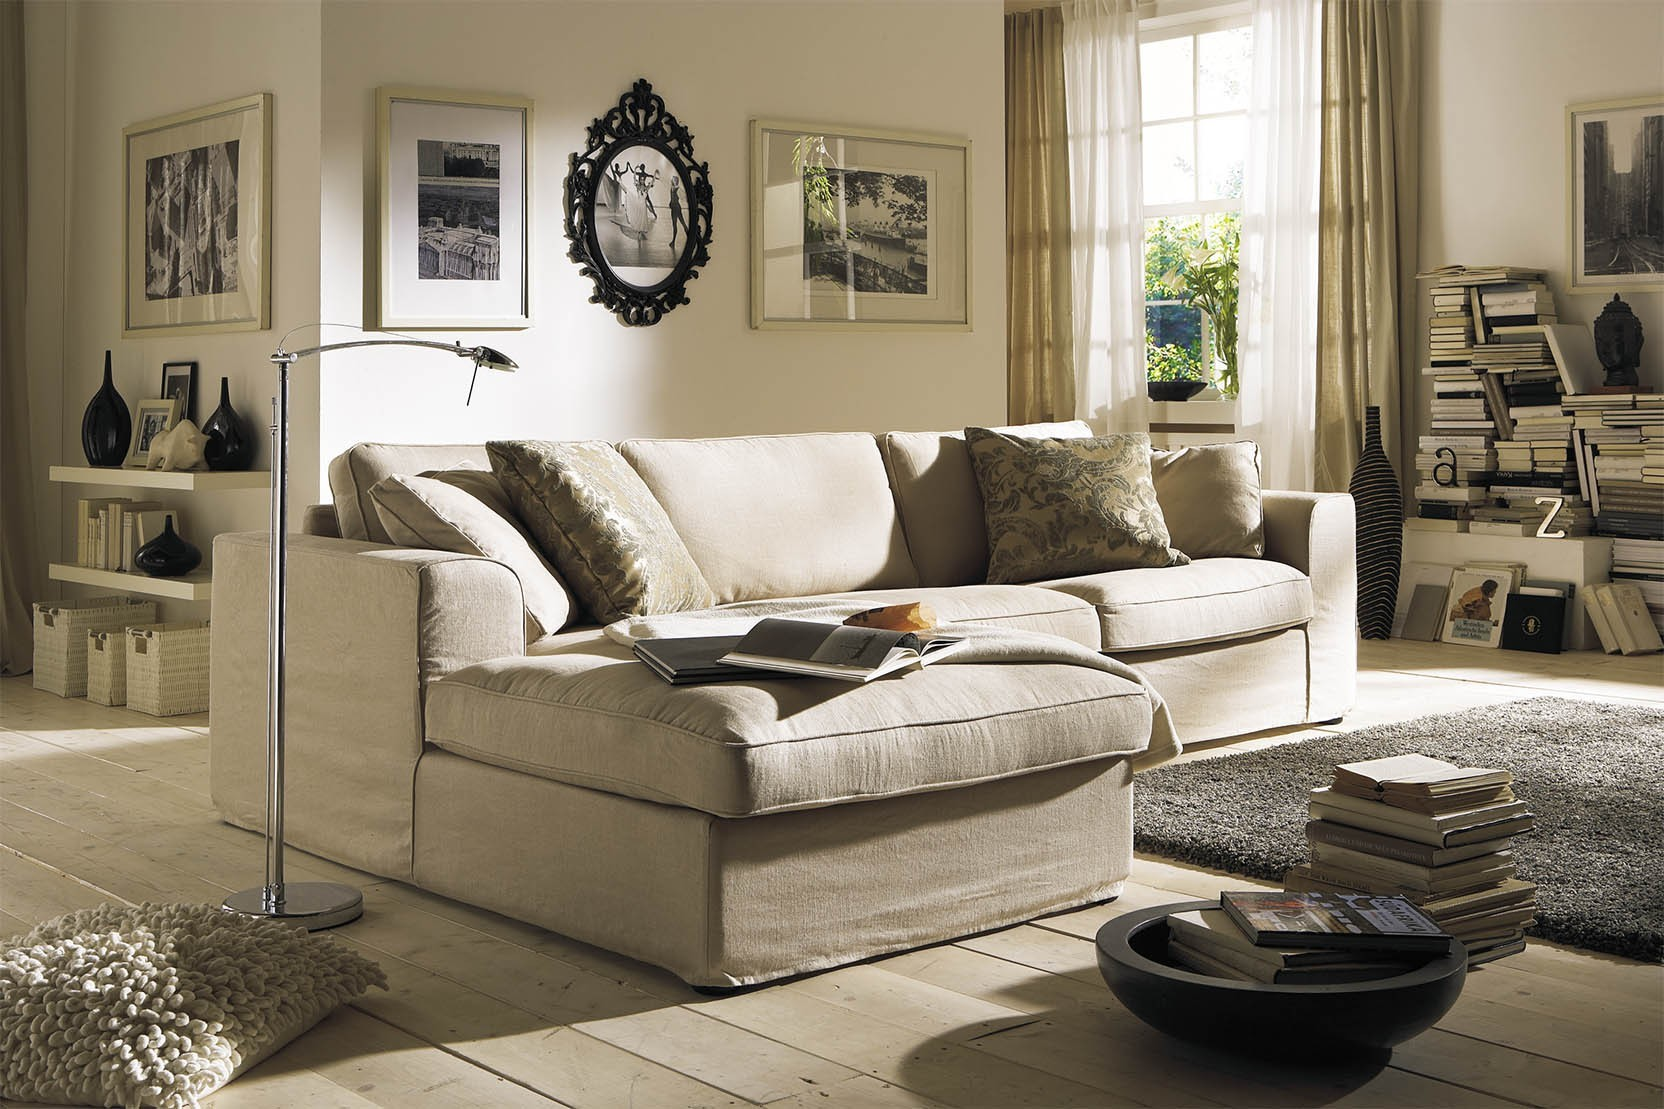 hussen ecksofa vom spezialisten primavera. Black Bedroom Furniture Sets. Home Design Ideas